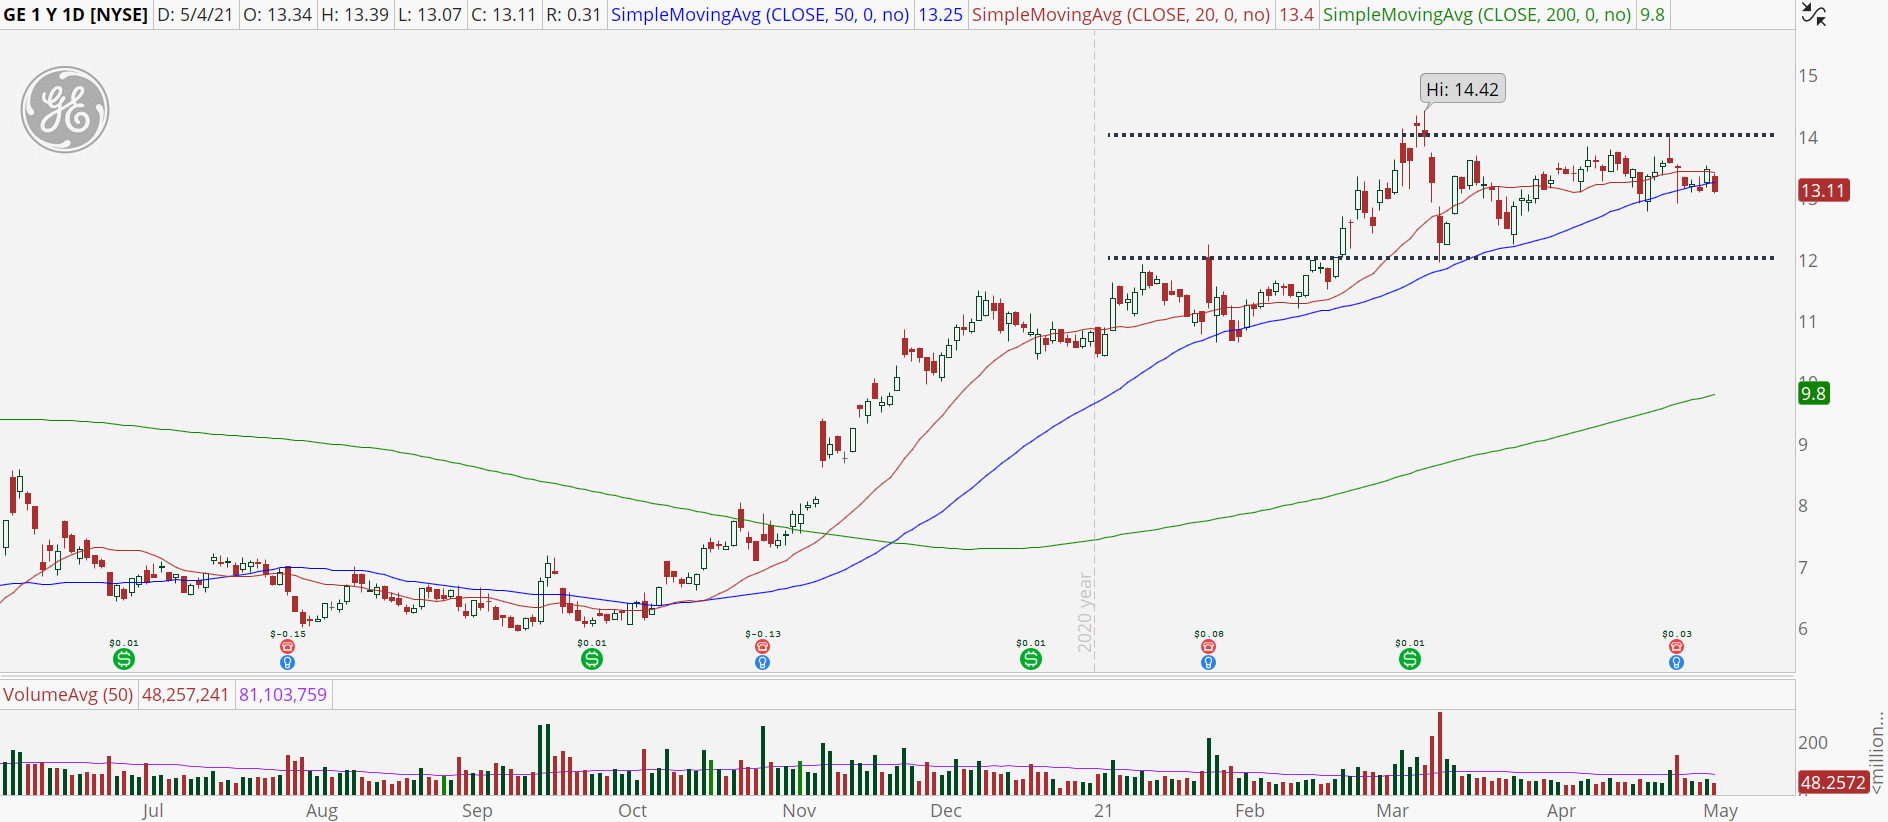 General Electric (GE) daily stock chart with trading range.